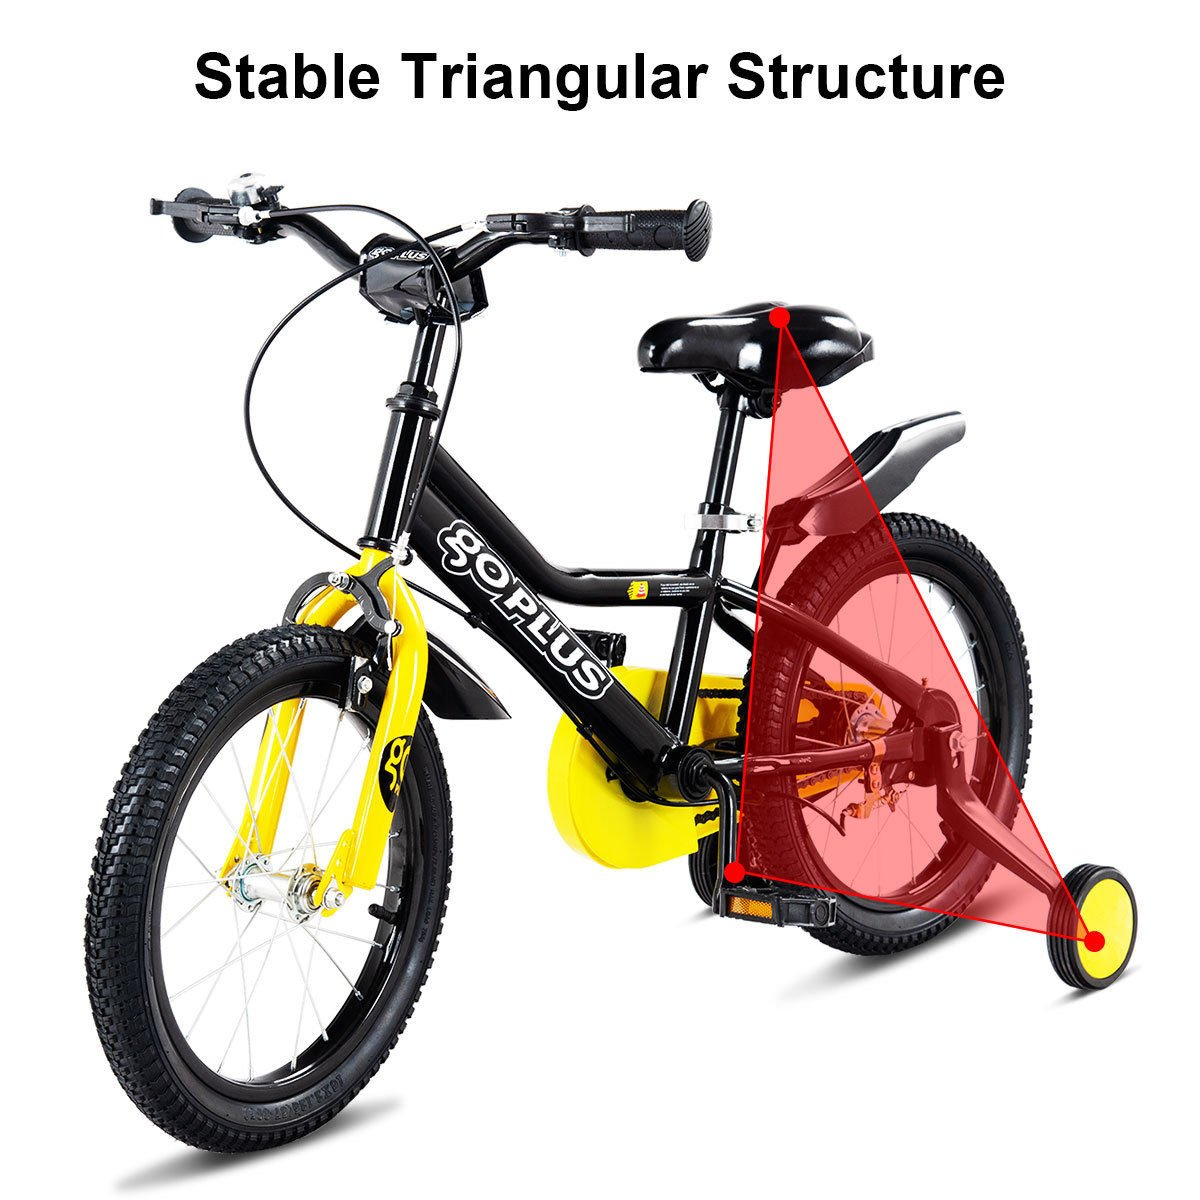 45bf4d43df1 Goplus 12'' Kid's Bike Freestyle Outdoor Sports Bicycle with Training  Wheels Boys Girls Cycling